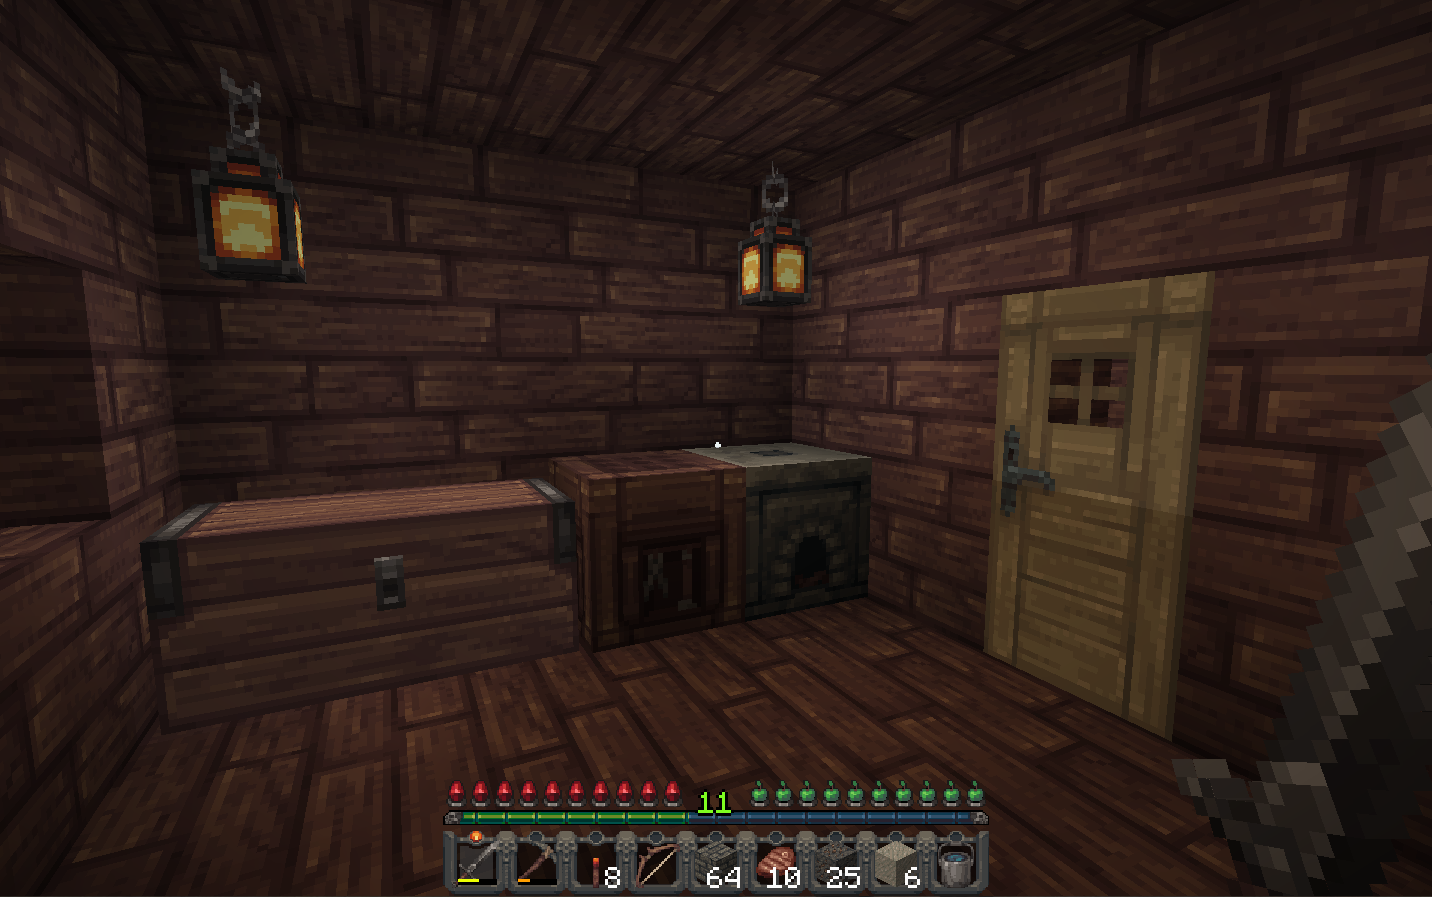 A view of the inside of a minecraft house, made with the Mythic Resource Pack